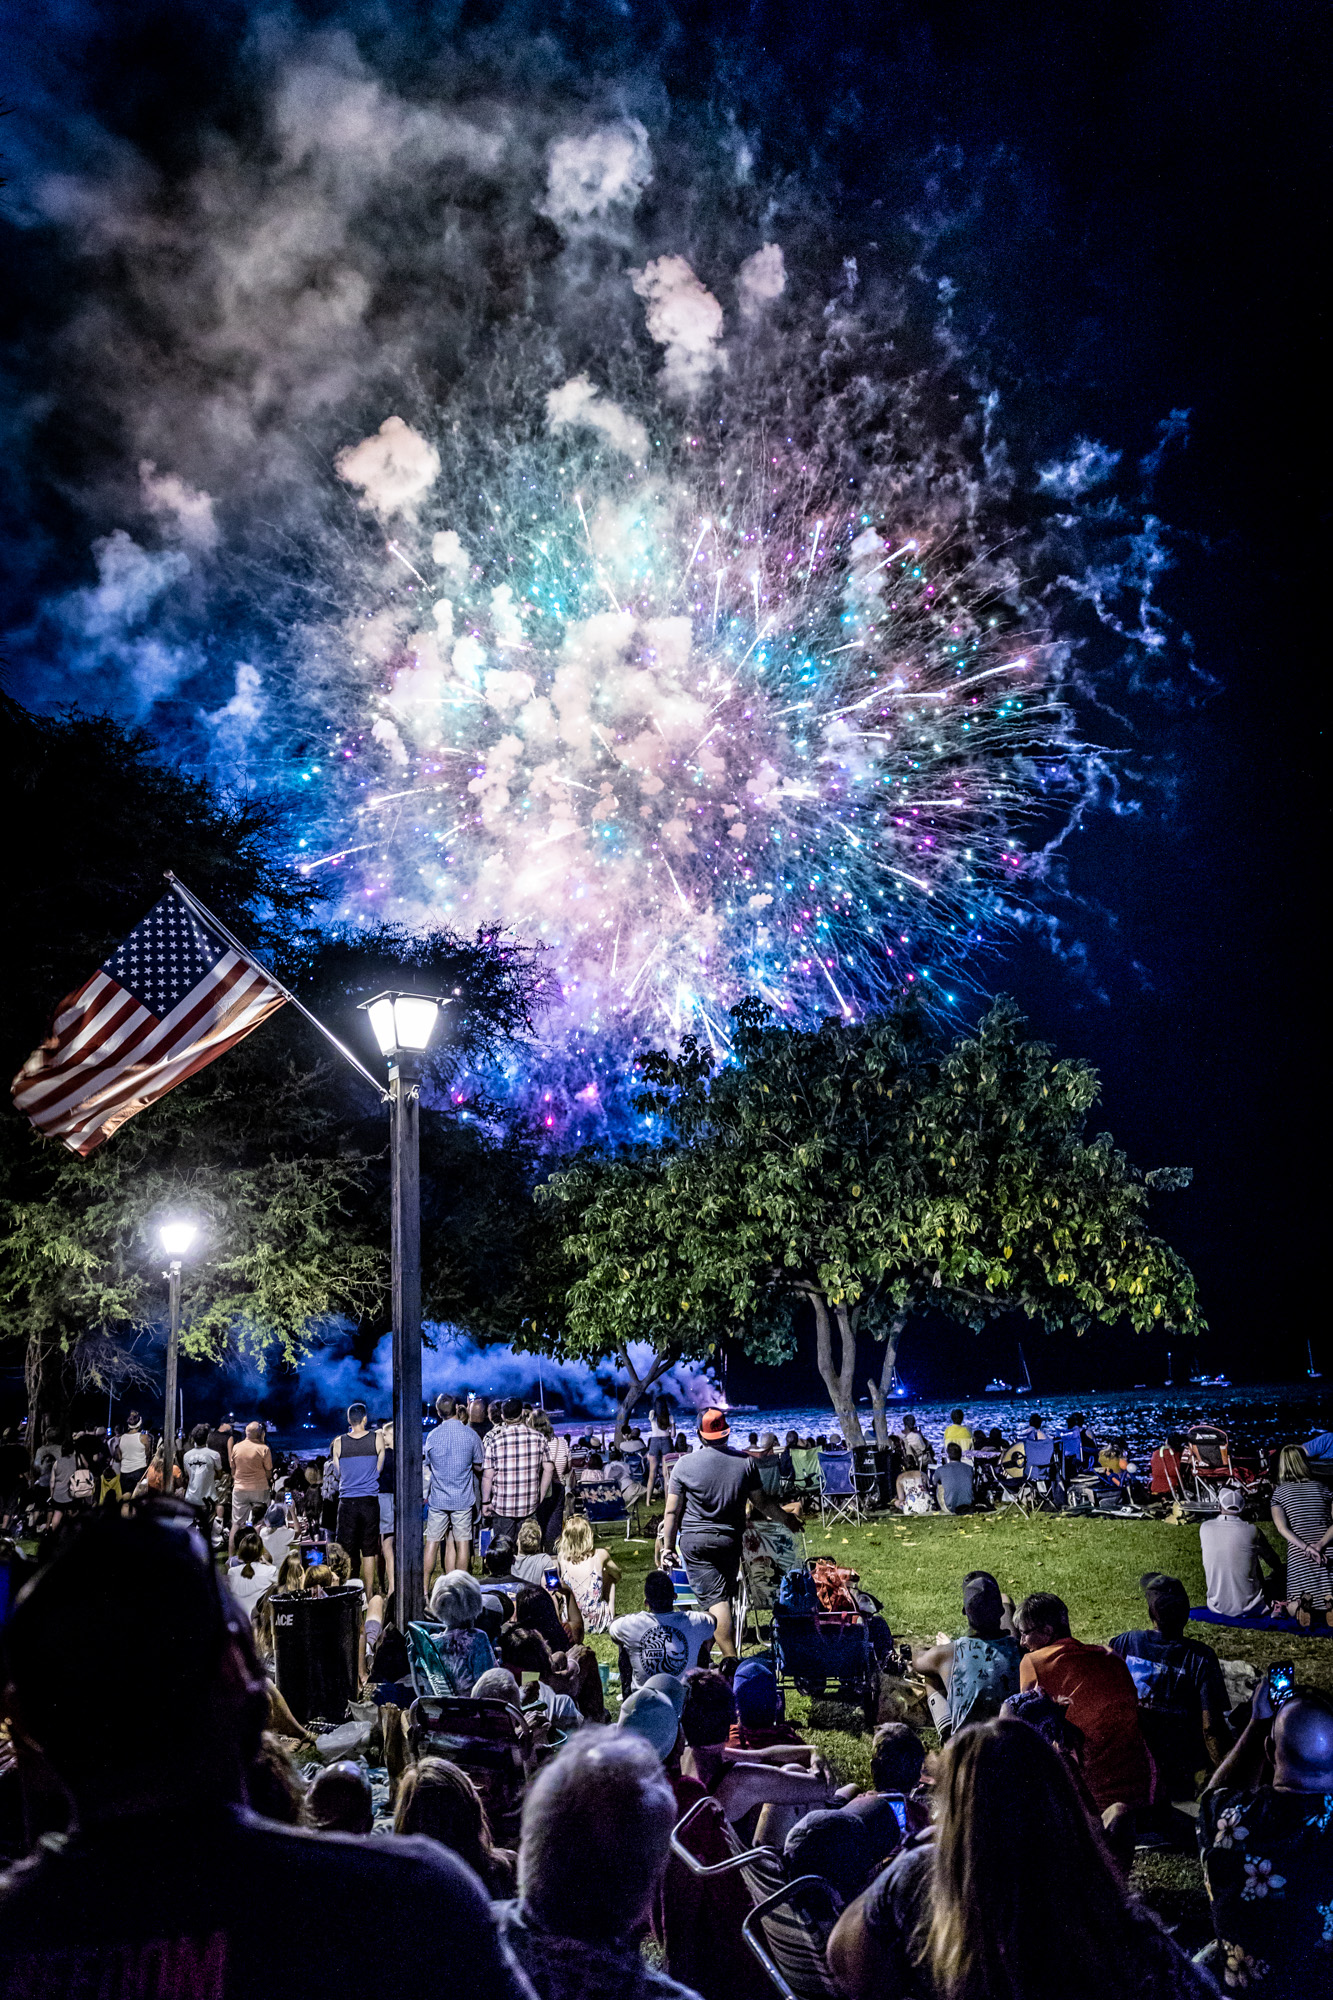 Maui Fireworks Display in Lahaina, Safety Reminders